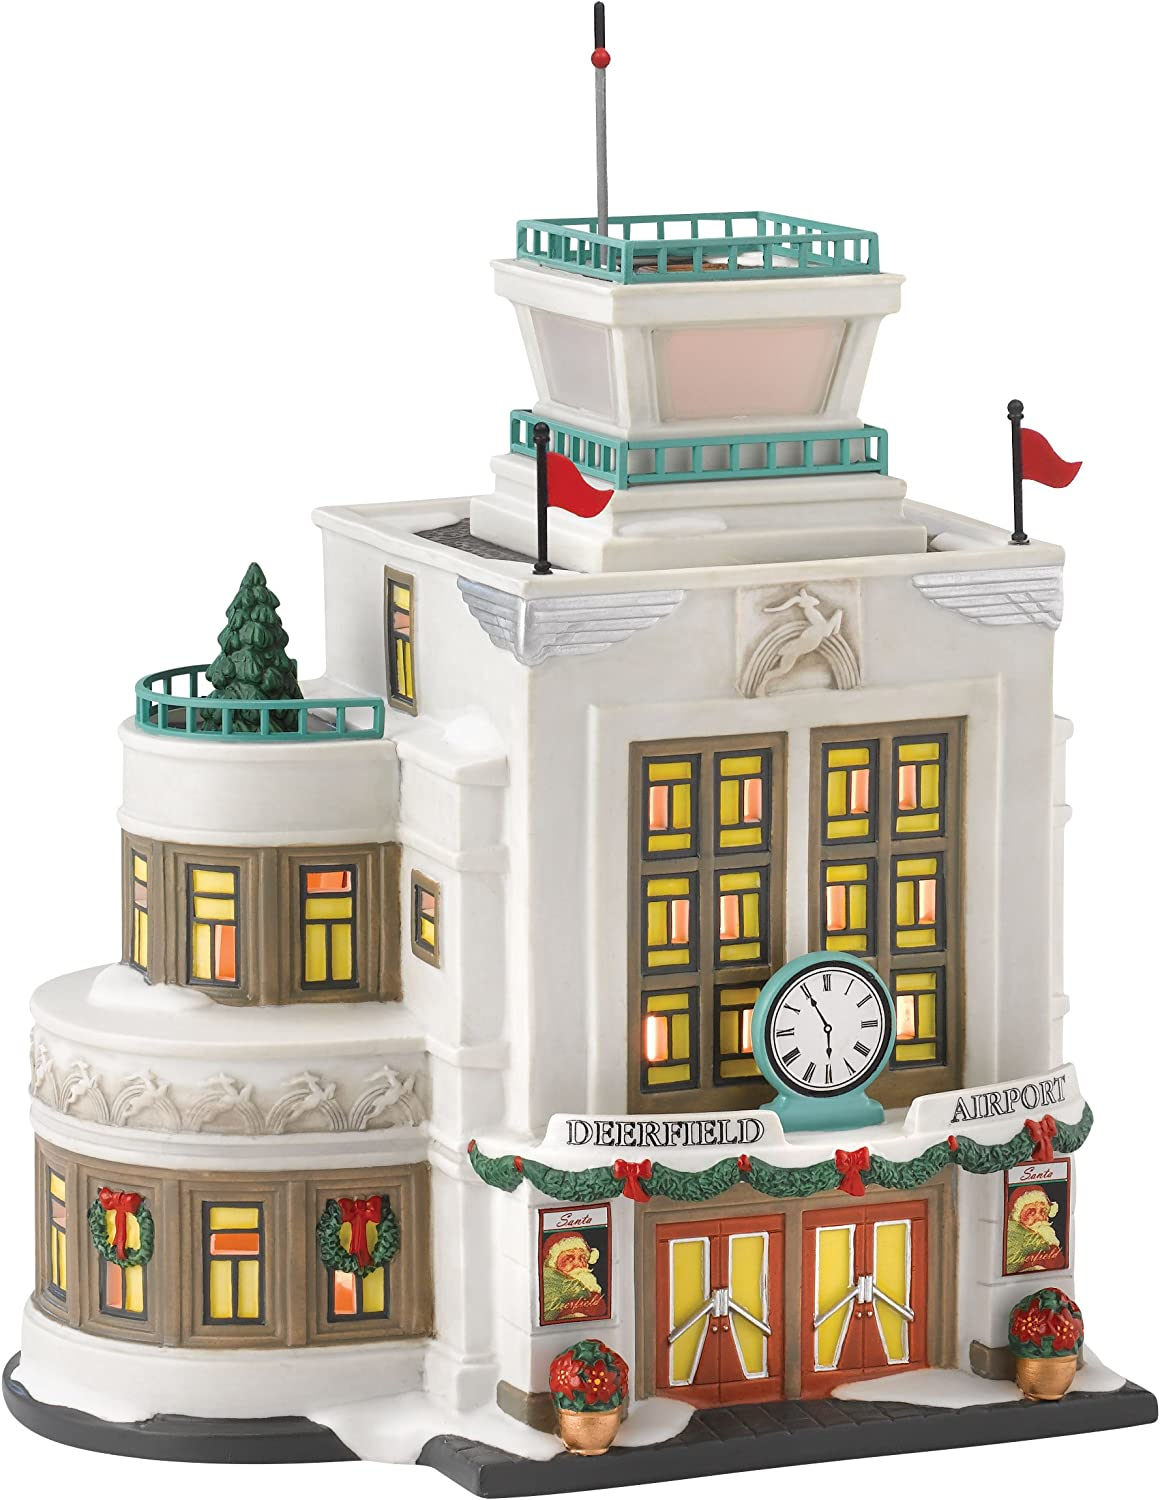 Department 56 Christmas in the City Village Deerfield Airport Lit House, 8.19 inch